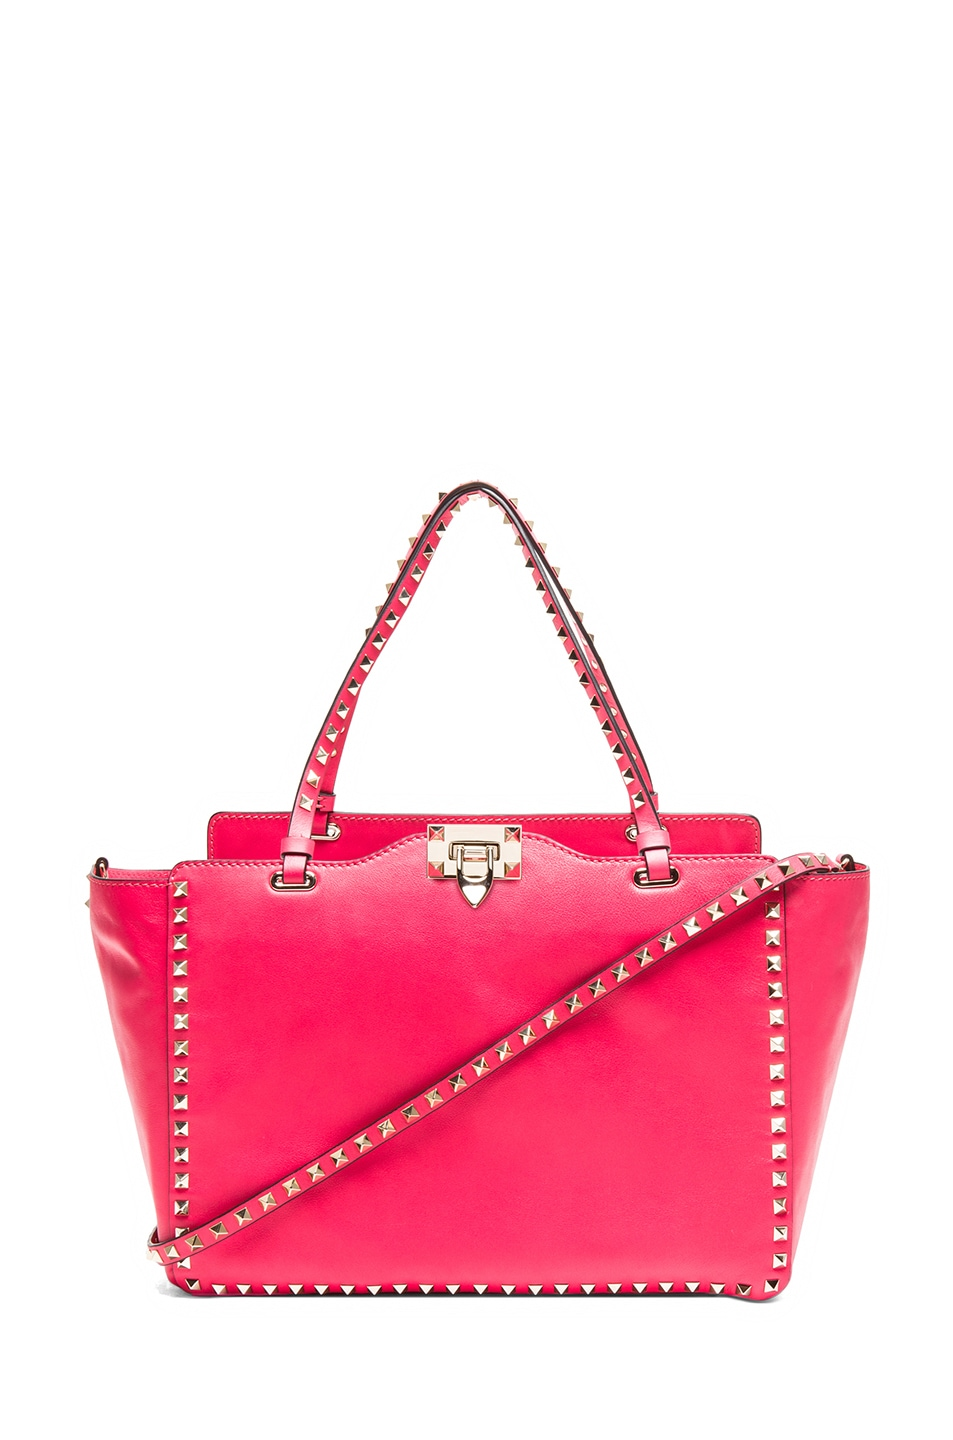 Image 1 of Valentino Medium Rockstud Trapeze Tote in Raspberry Red